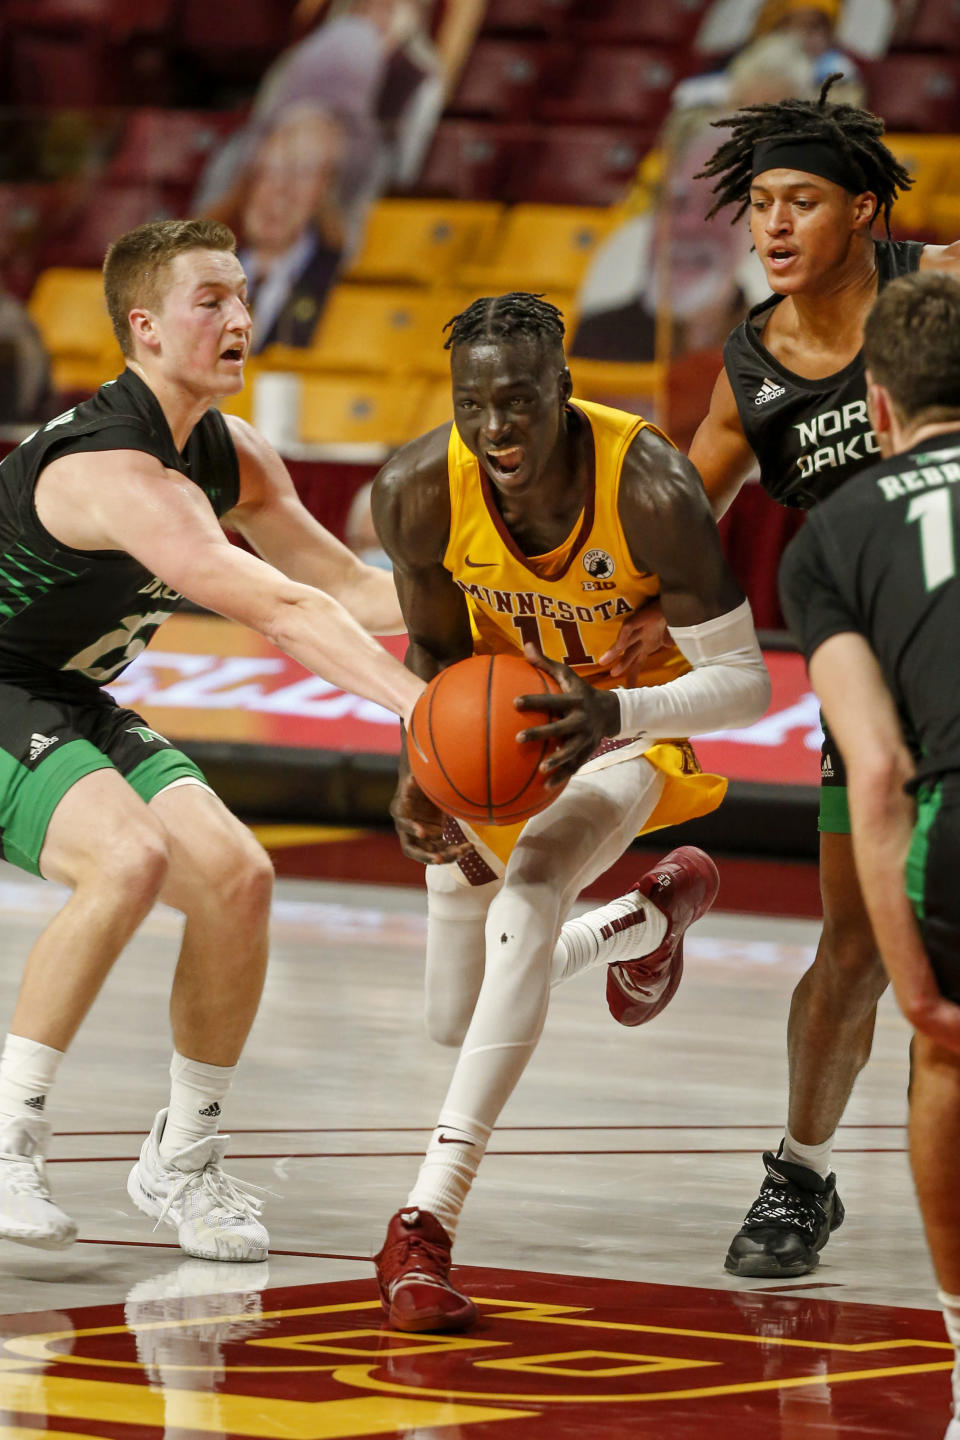 Minnesota guard Both Gach (11) works between the defense of North Dakota forward Brady Danielson (15) and guard Tyree Ihenacho (4) in the first half of an NCAA college basketball game Friday, Dec. 4, 2020, in Minneapolis. (AP Photo/Bruce Kluckhohn)